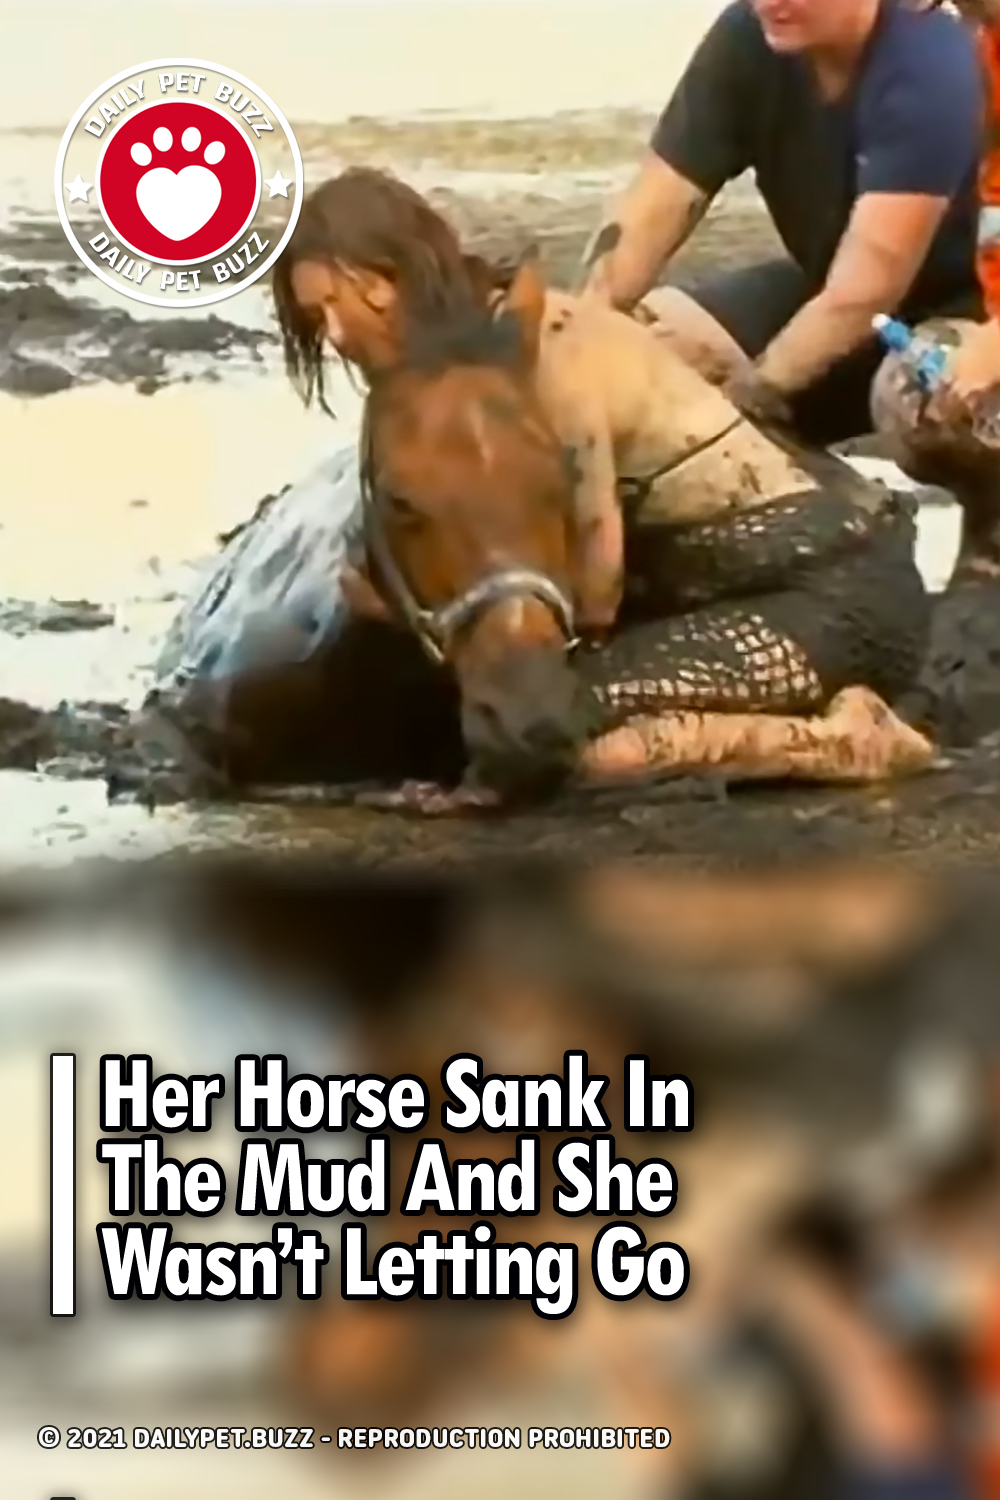 Her Horse Sank In The Mud And She Wasn't Letting Go